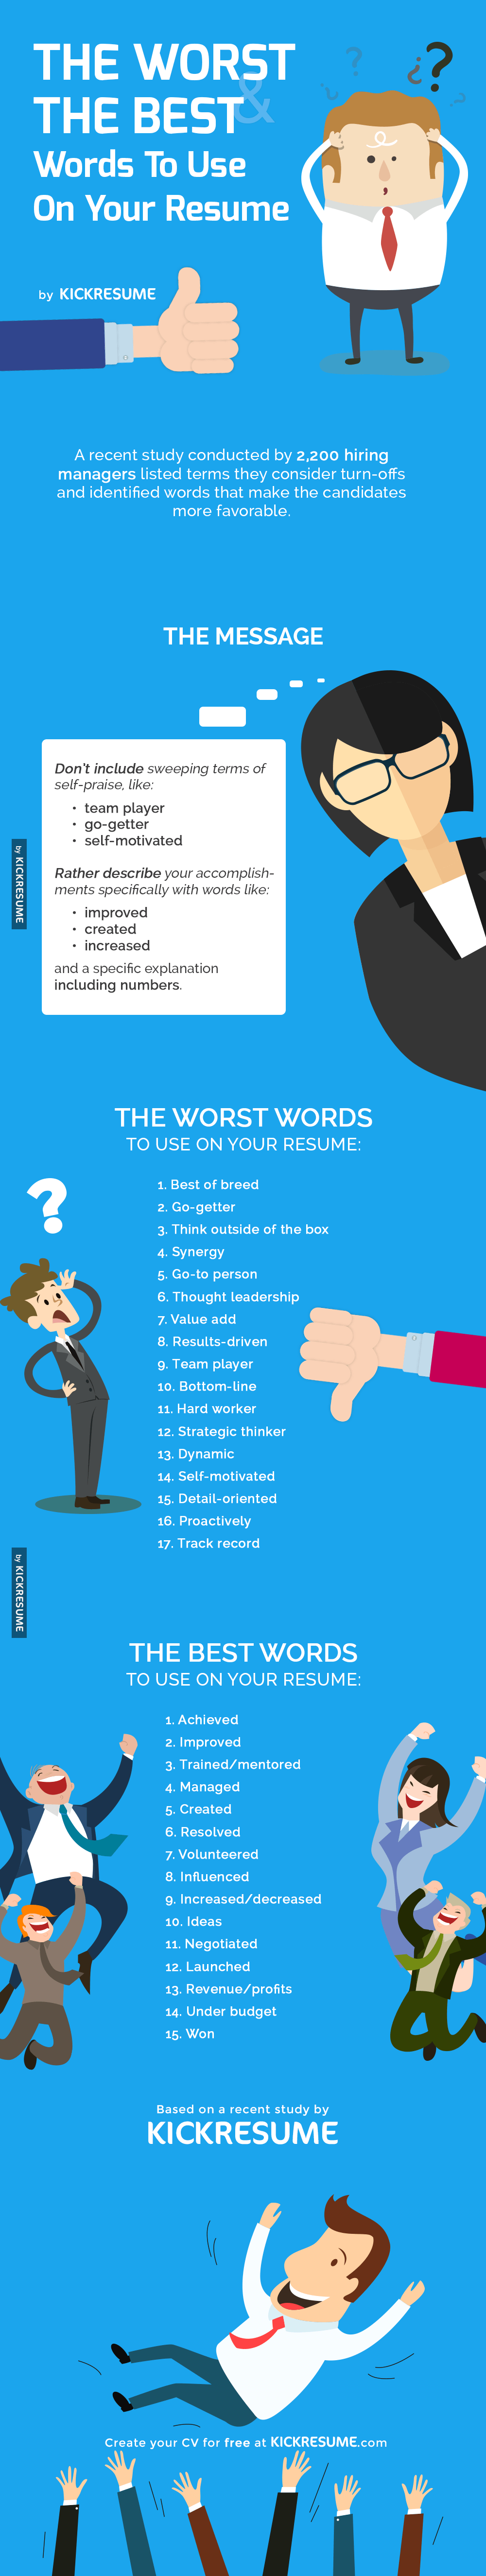 these are the best and worst words to include on your r eacute sum eacute  word choice on your reacutesumeacute and cover letter can make or break your chances at getting the job these days we luckily have infographics to educate and